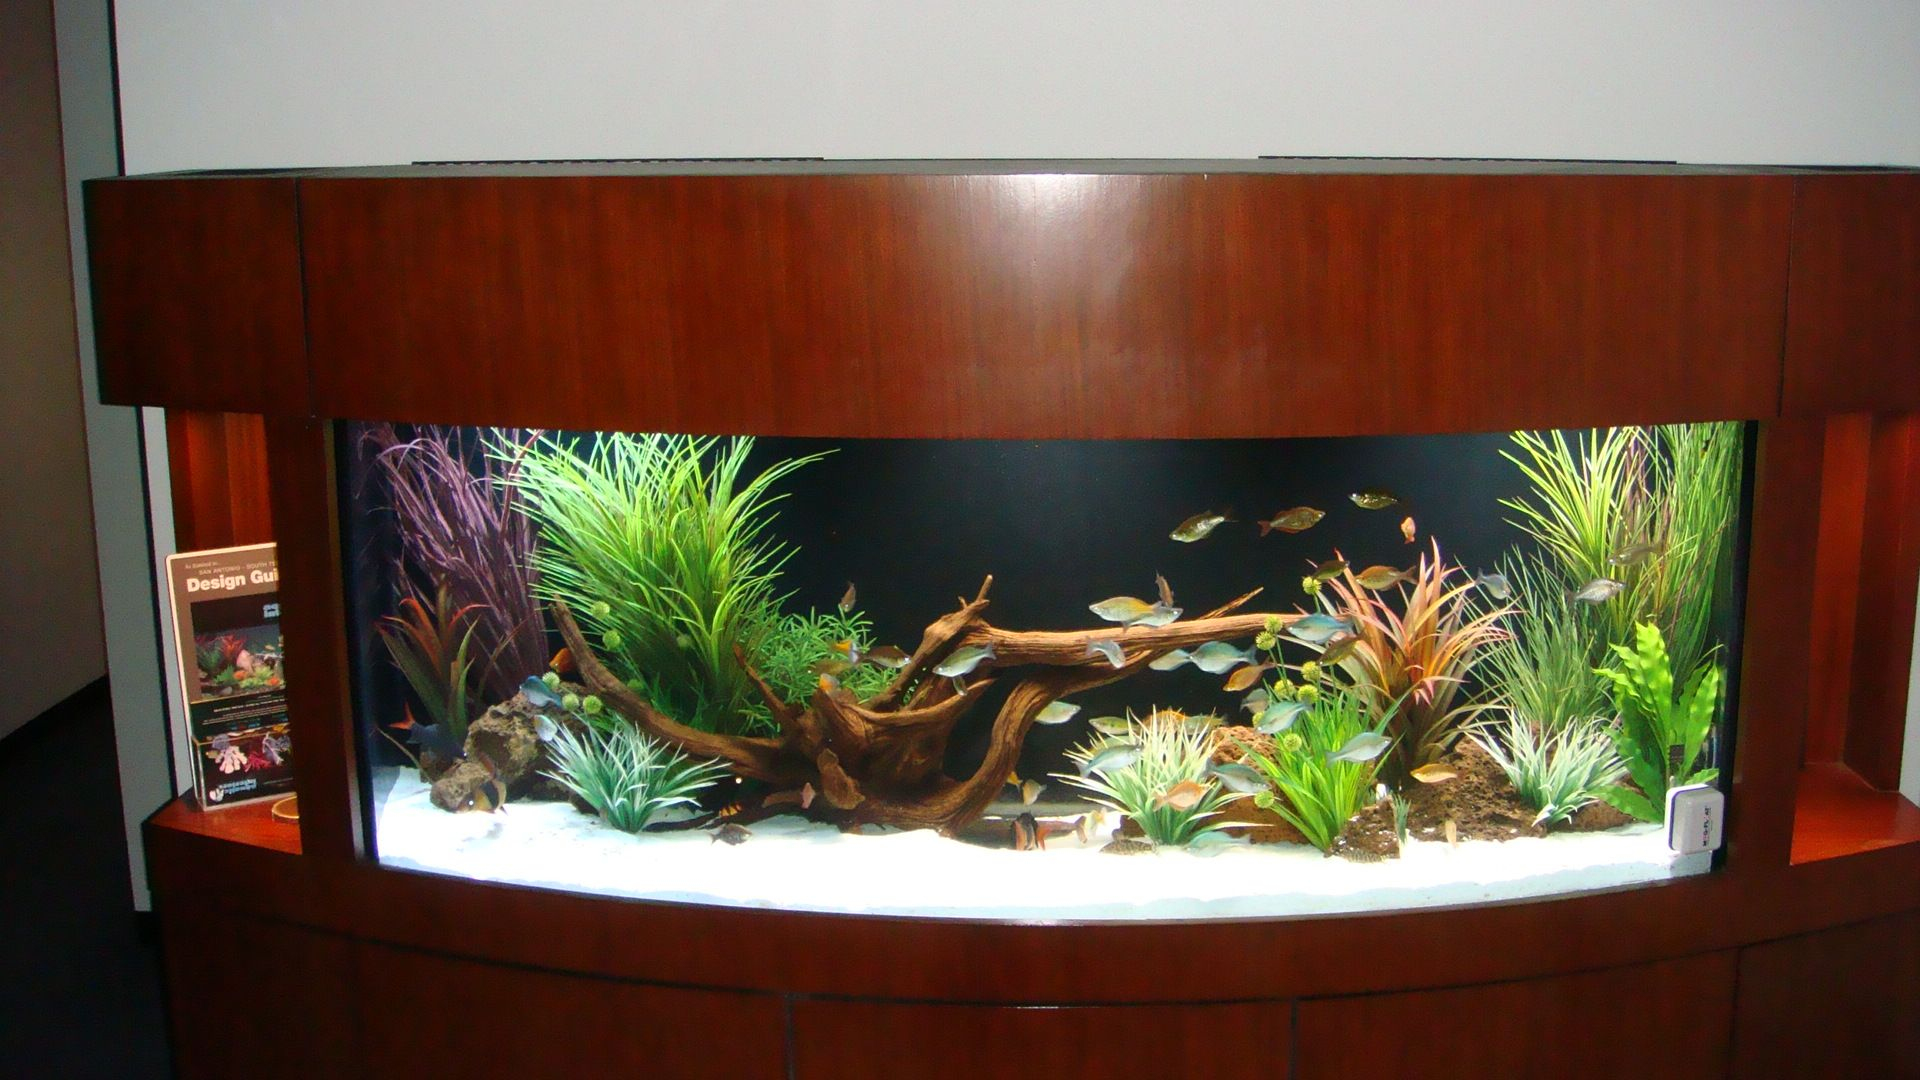 transform the way your home looks using a fish tank fish. Black Bedroom Furniture Sets. Home Design Ideas